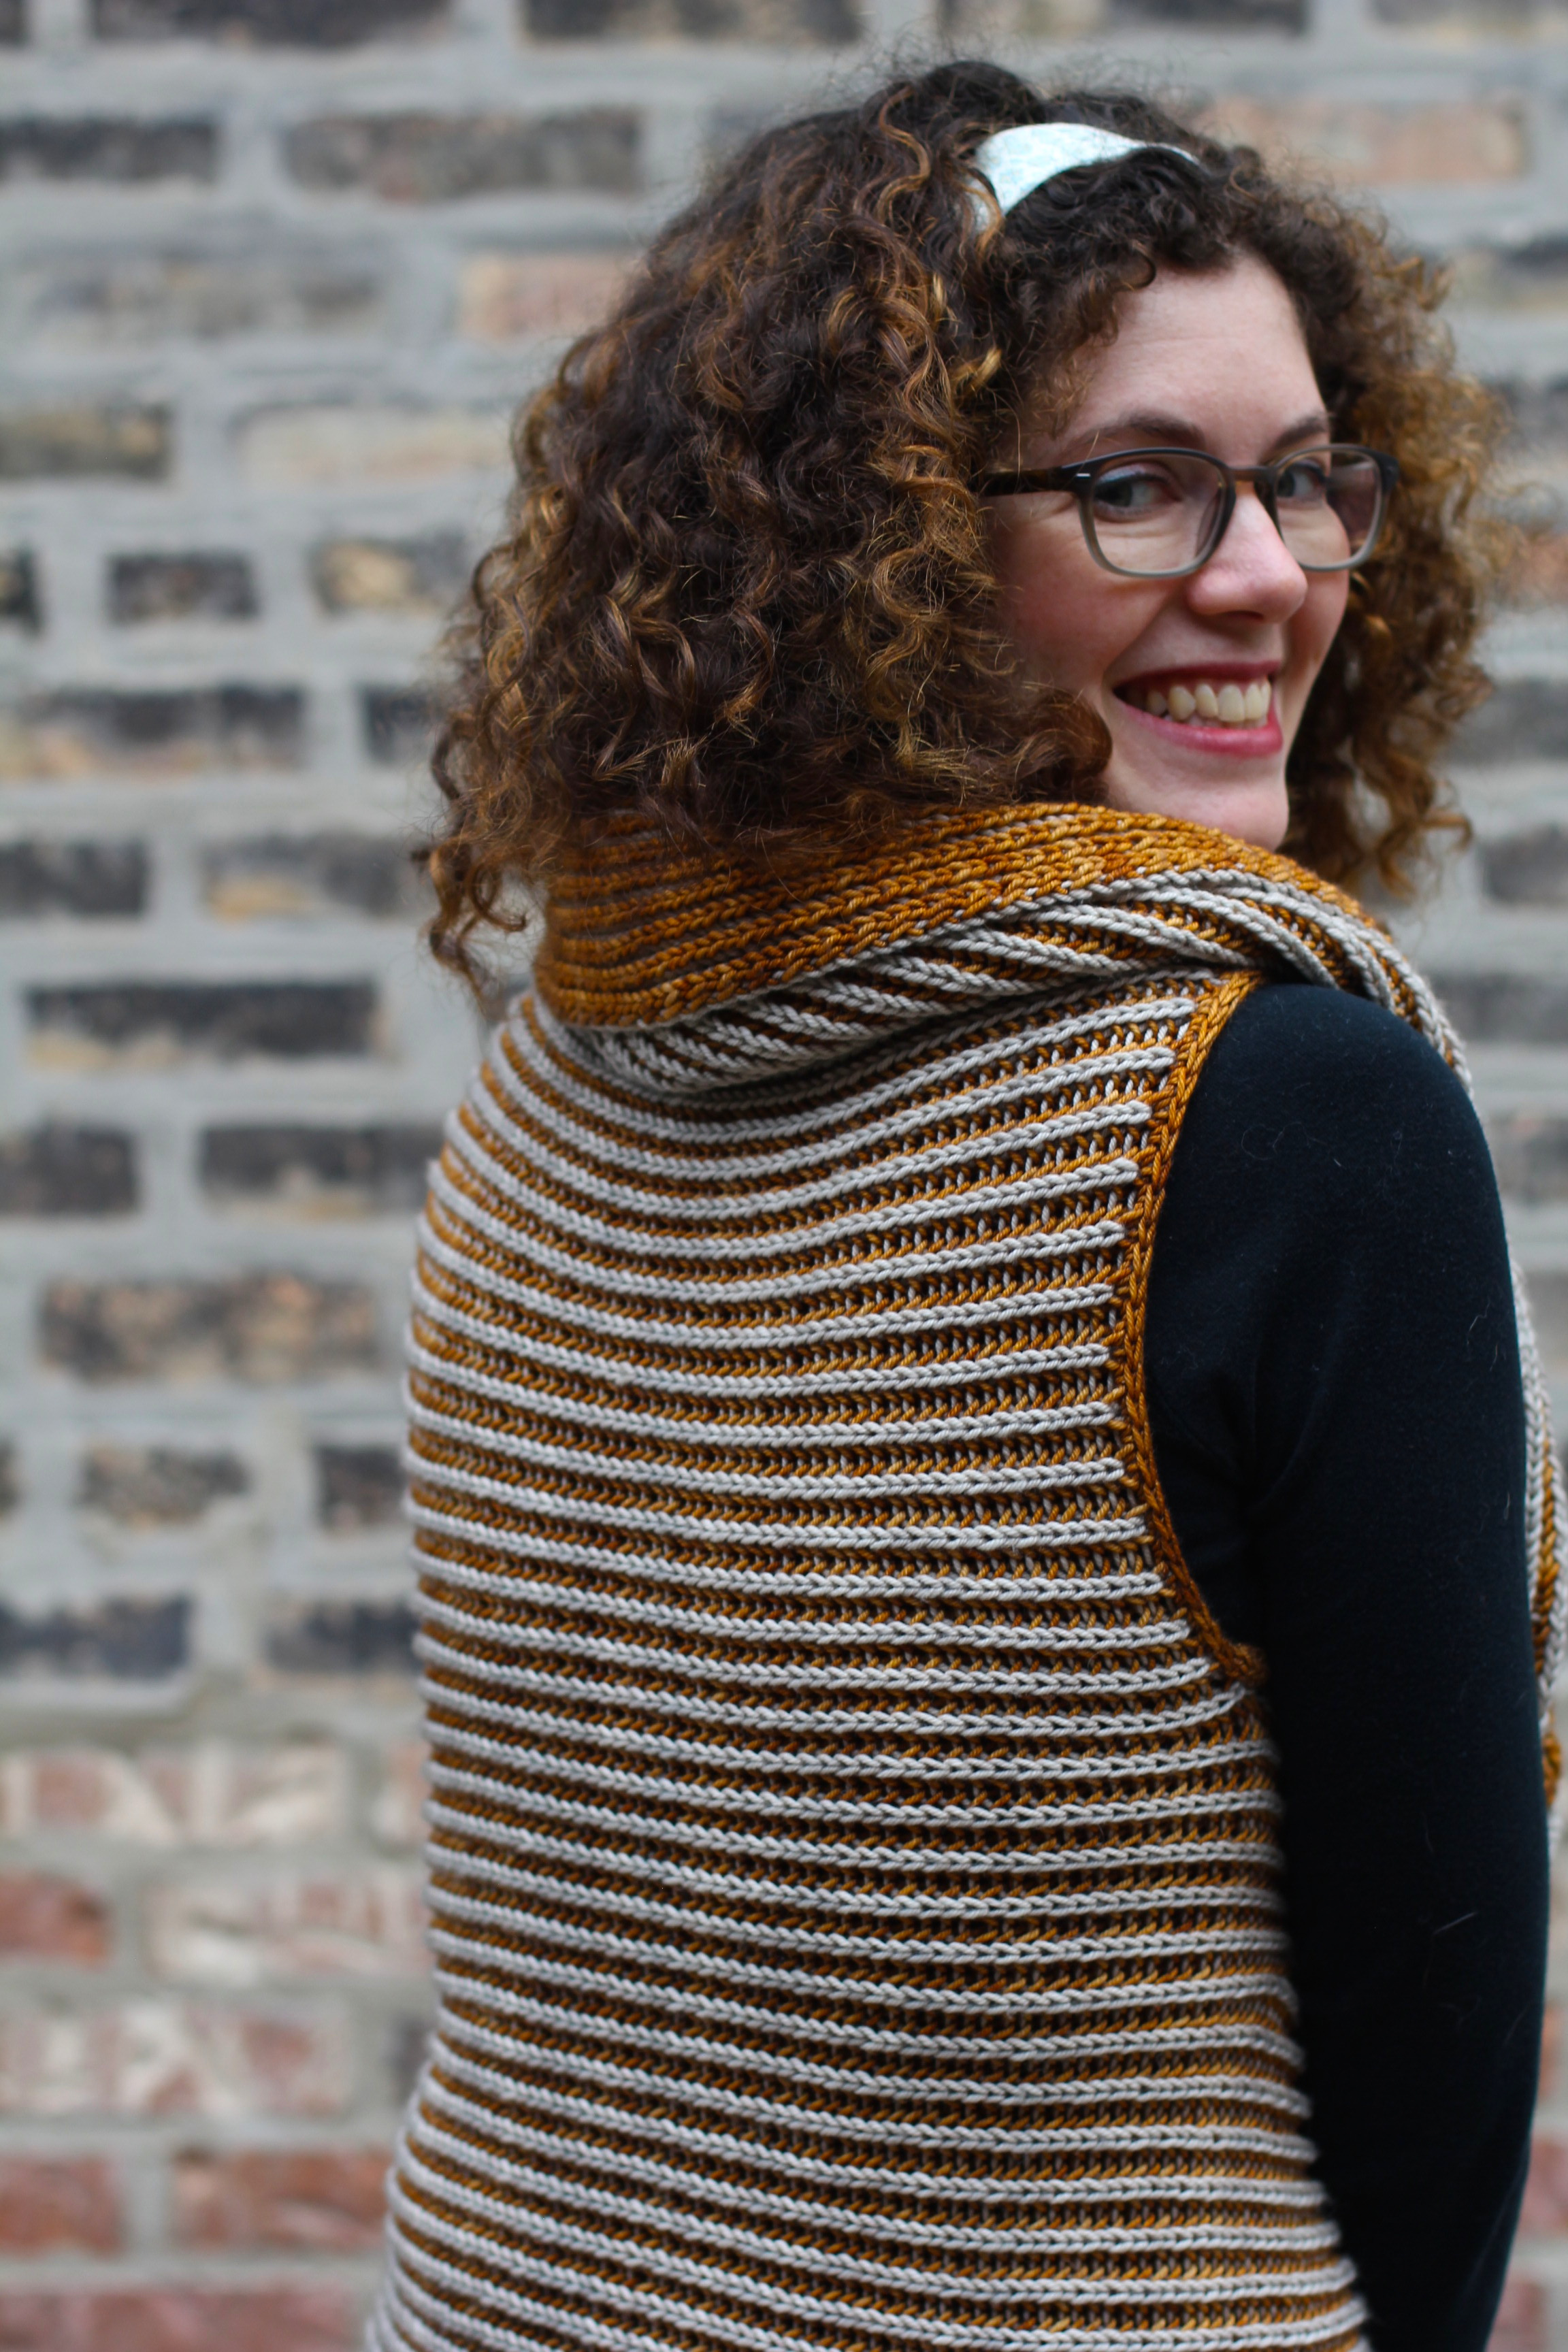 This is just a sneak peek of the vest pattern that will be published in the Fall/Winter 2014 issue of Holla Knits!